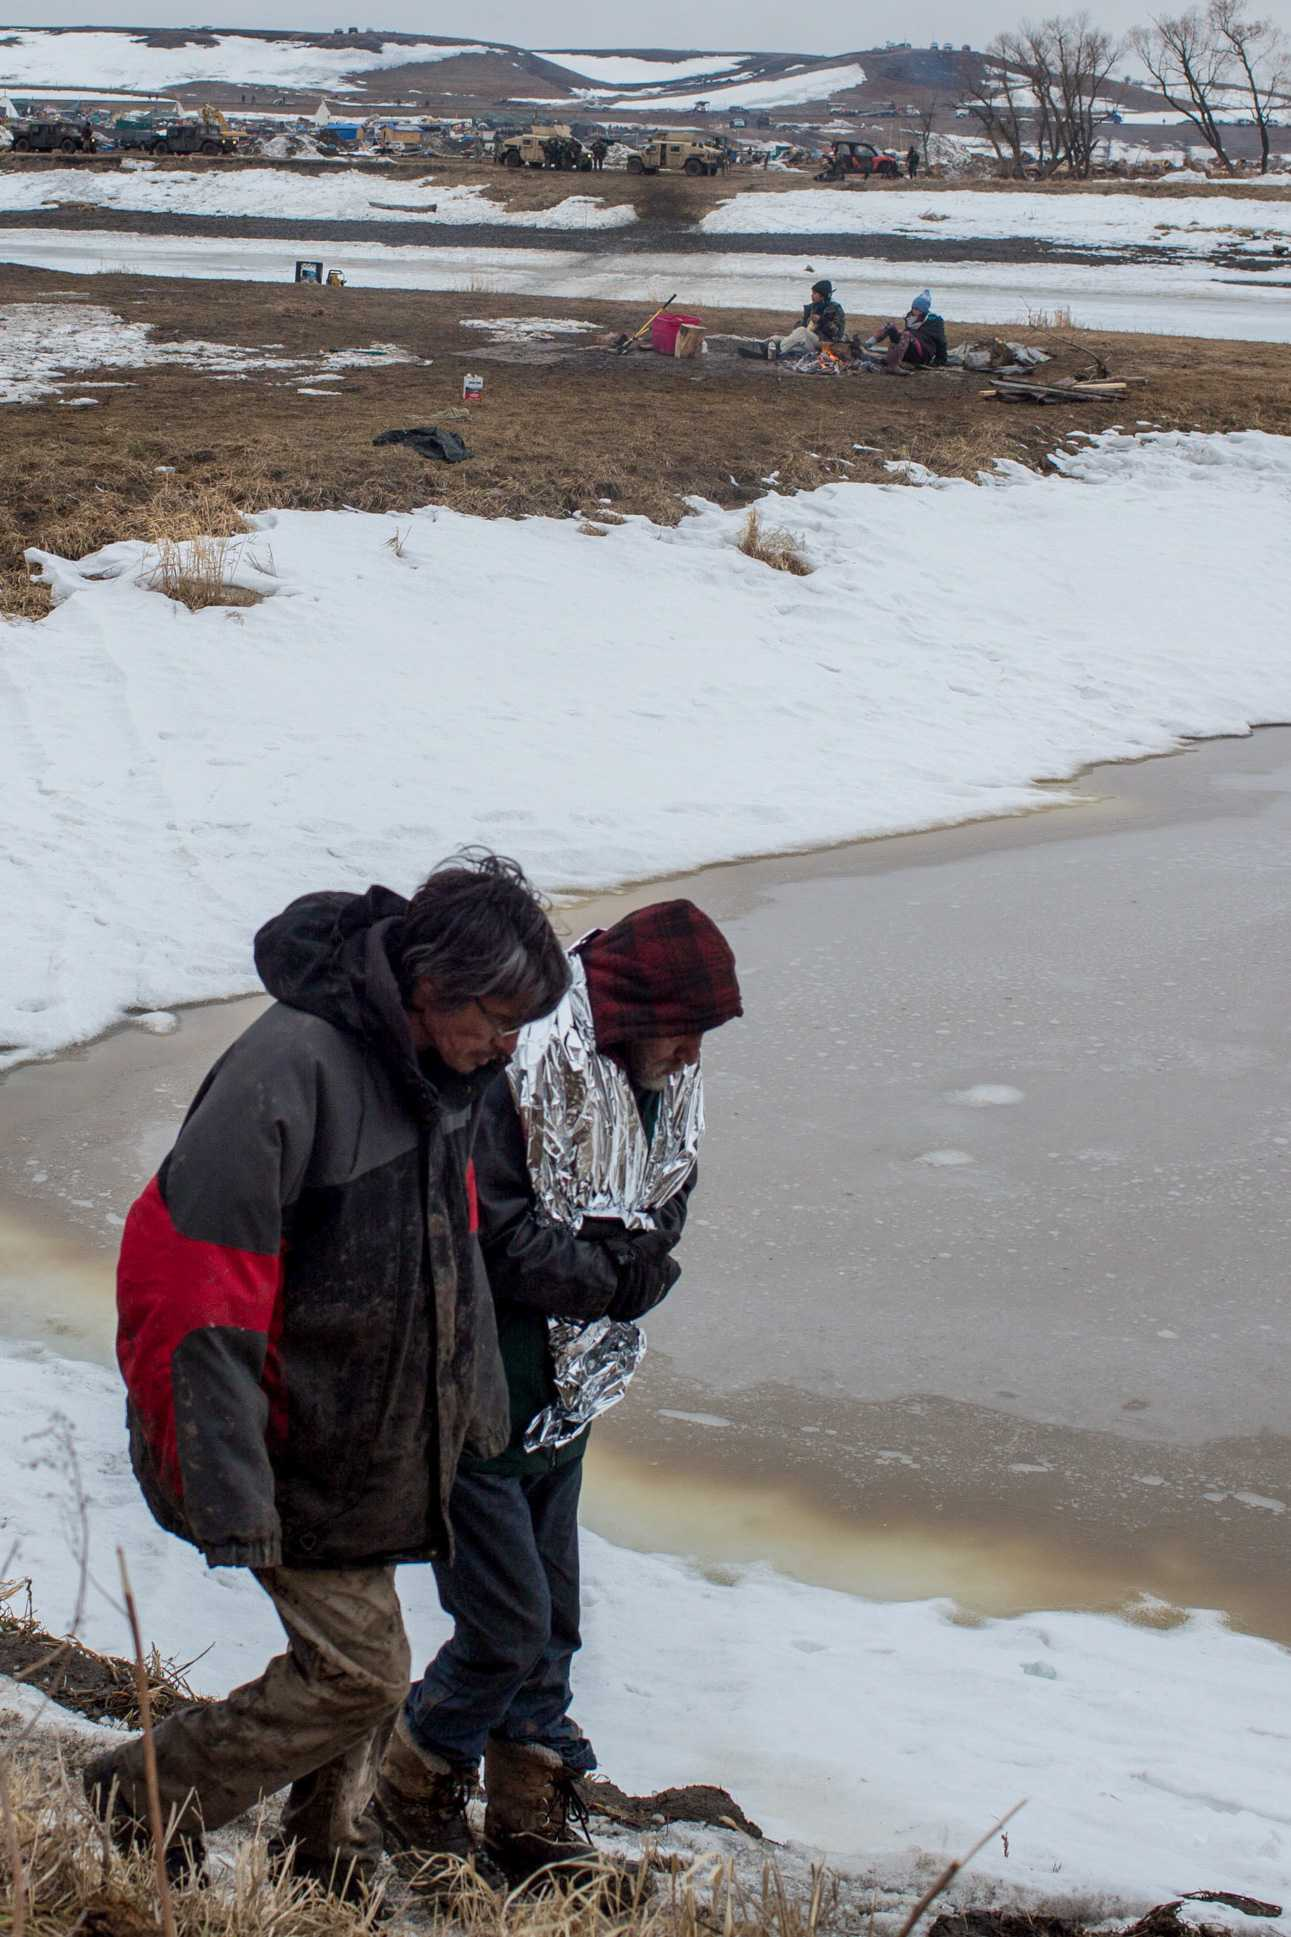 Elders retreat as in the distance hundreds of heavily militarized and armed police raid Oceti Sakowin camp, the protest camp established by the seven councils of the Lakota tribe in order to resist the proposed Dakota Access Pipeline. Photo by Ruth Lorio.